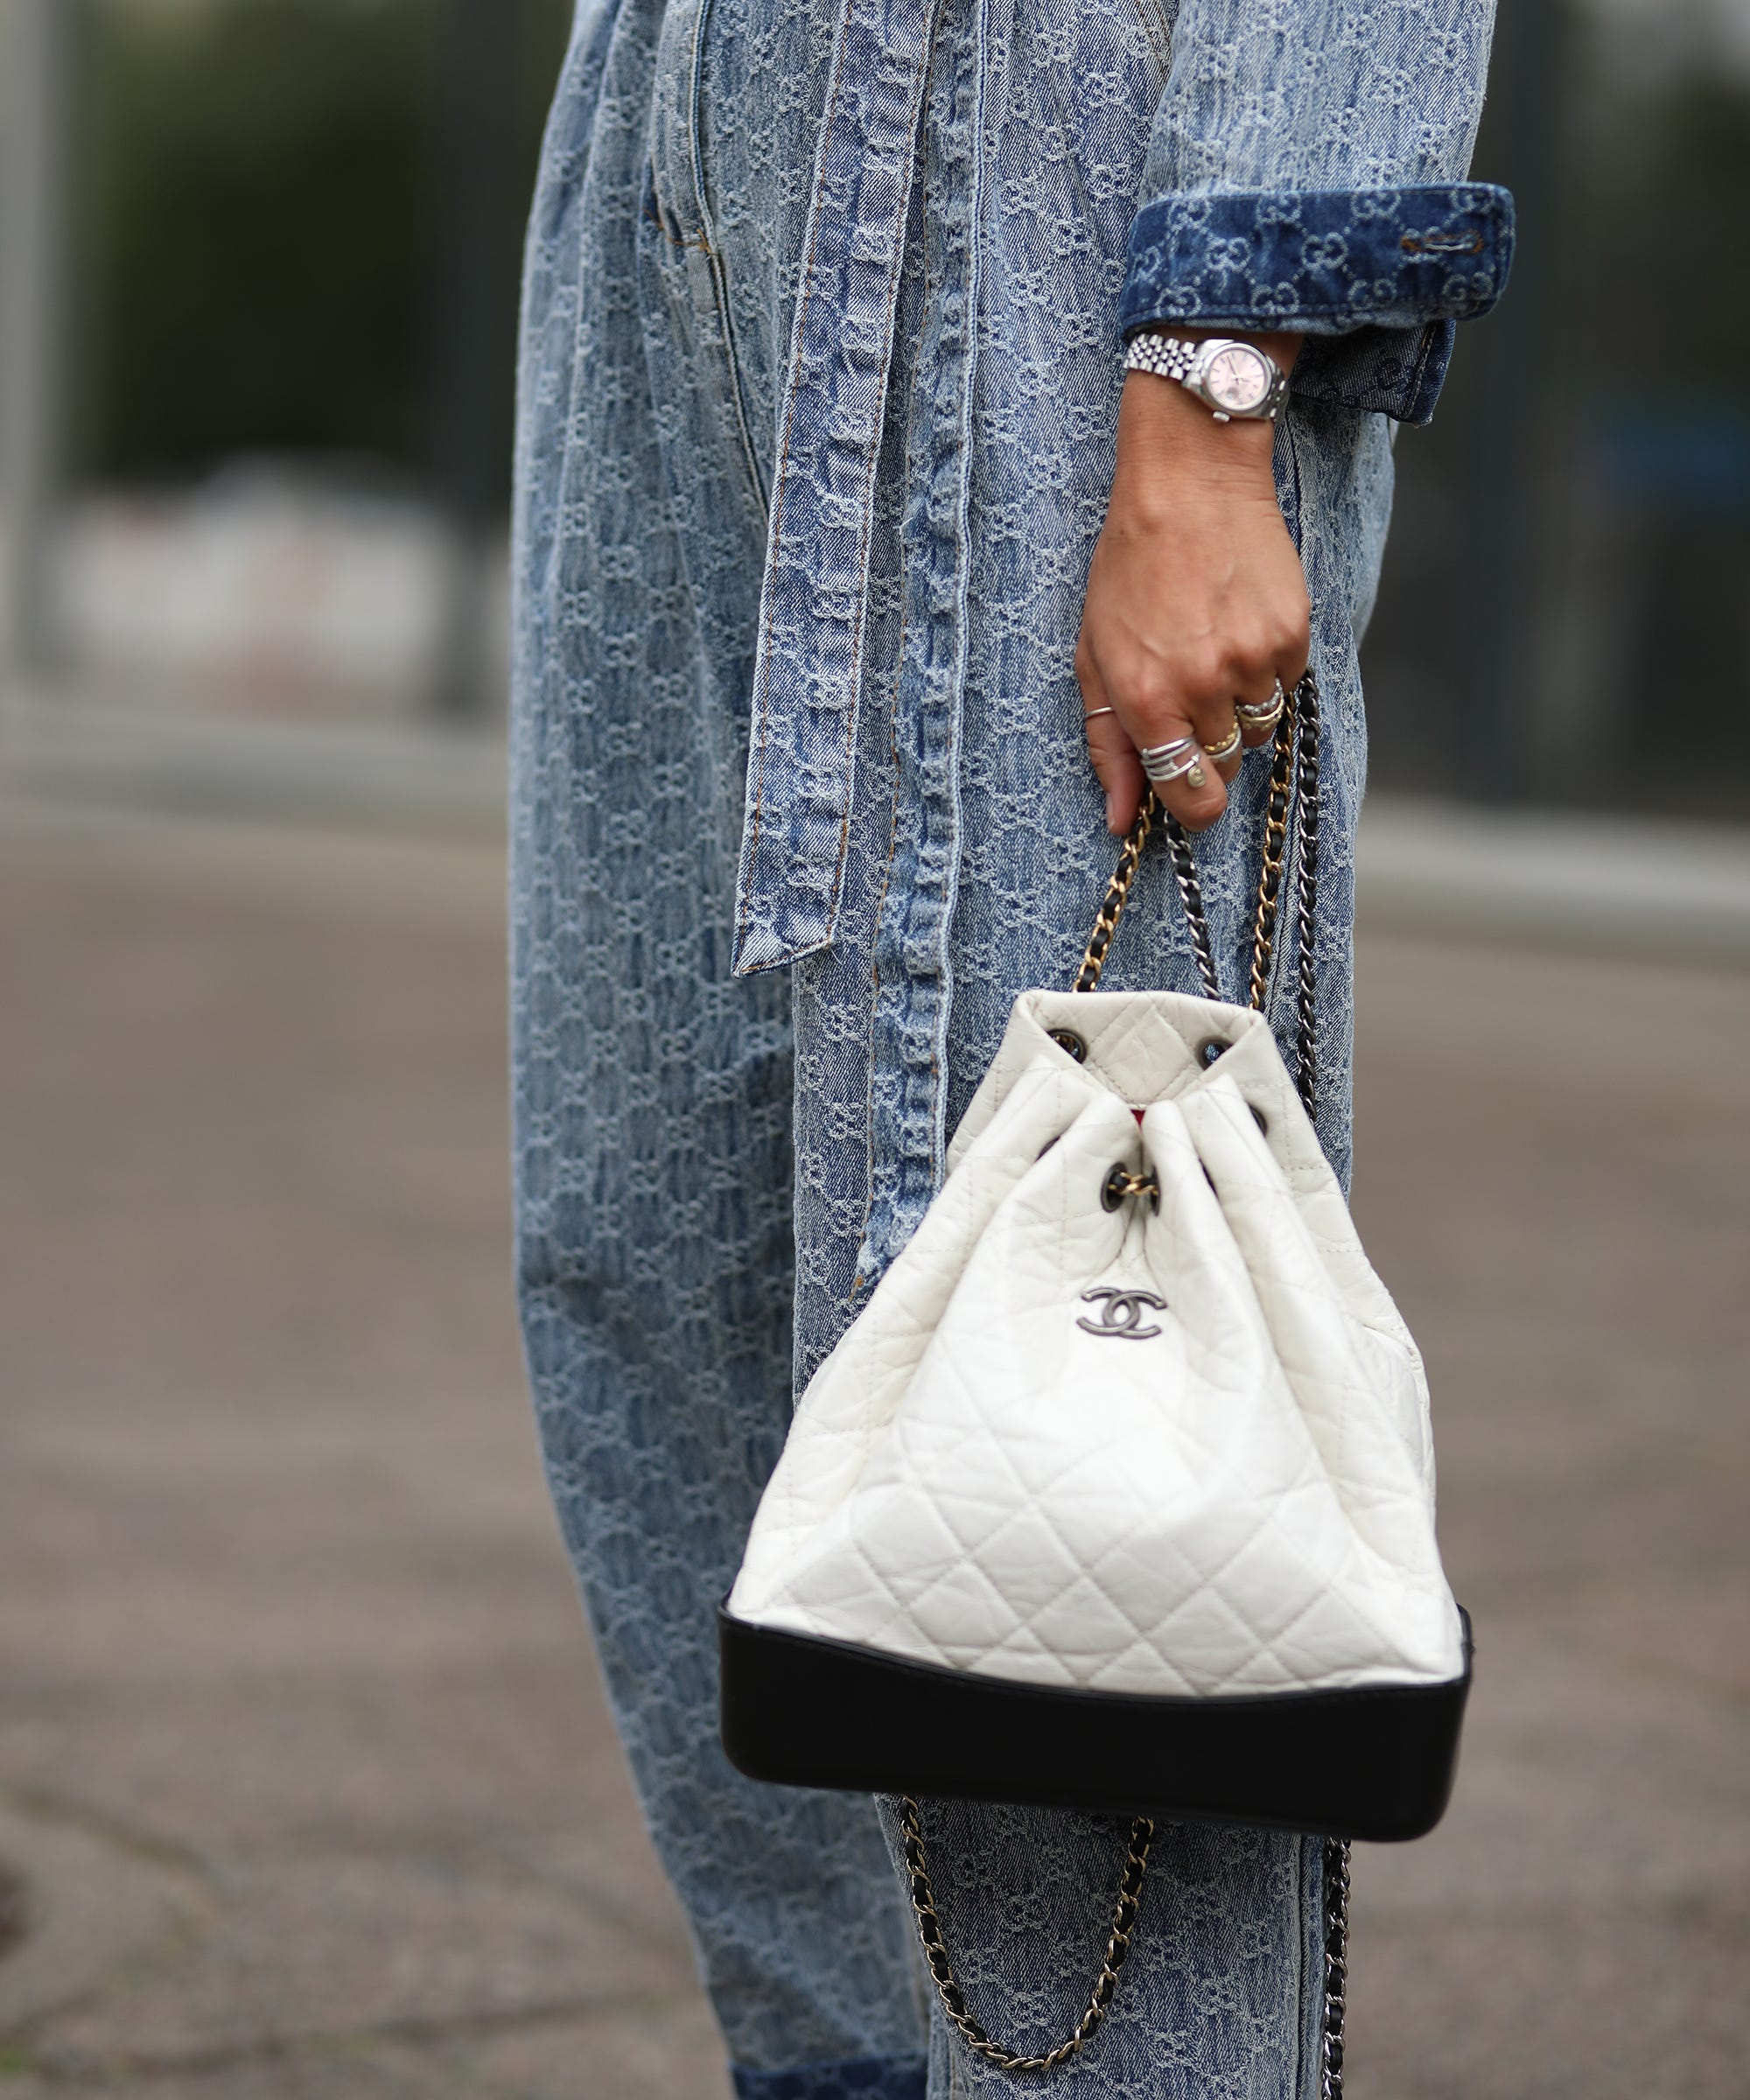 Vintage Designer Handbags That Are Worth The Investment